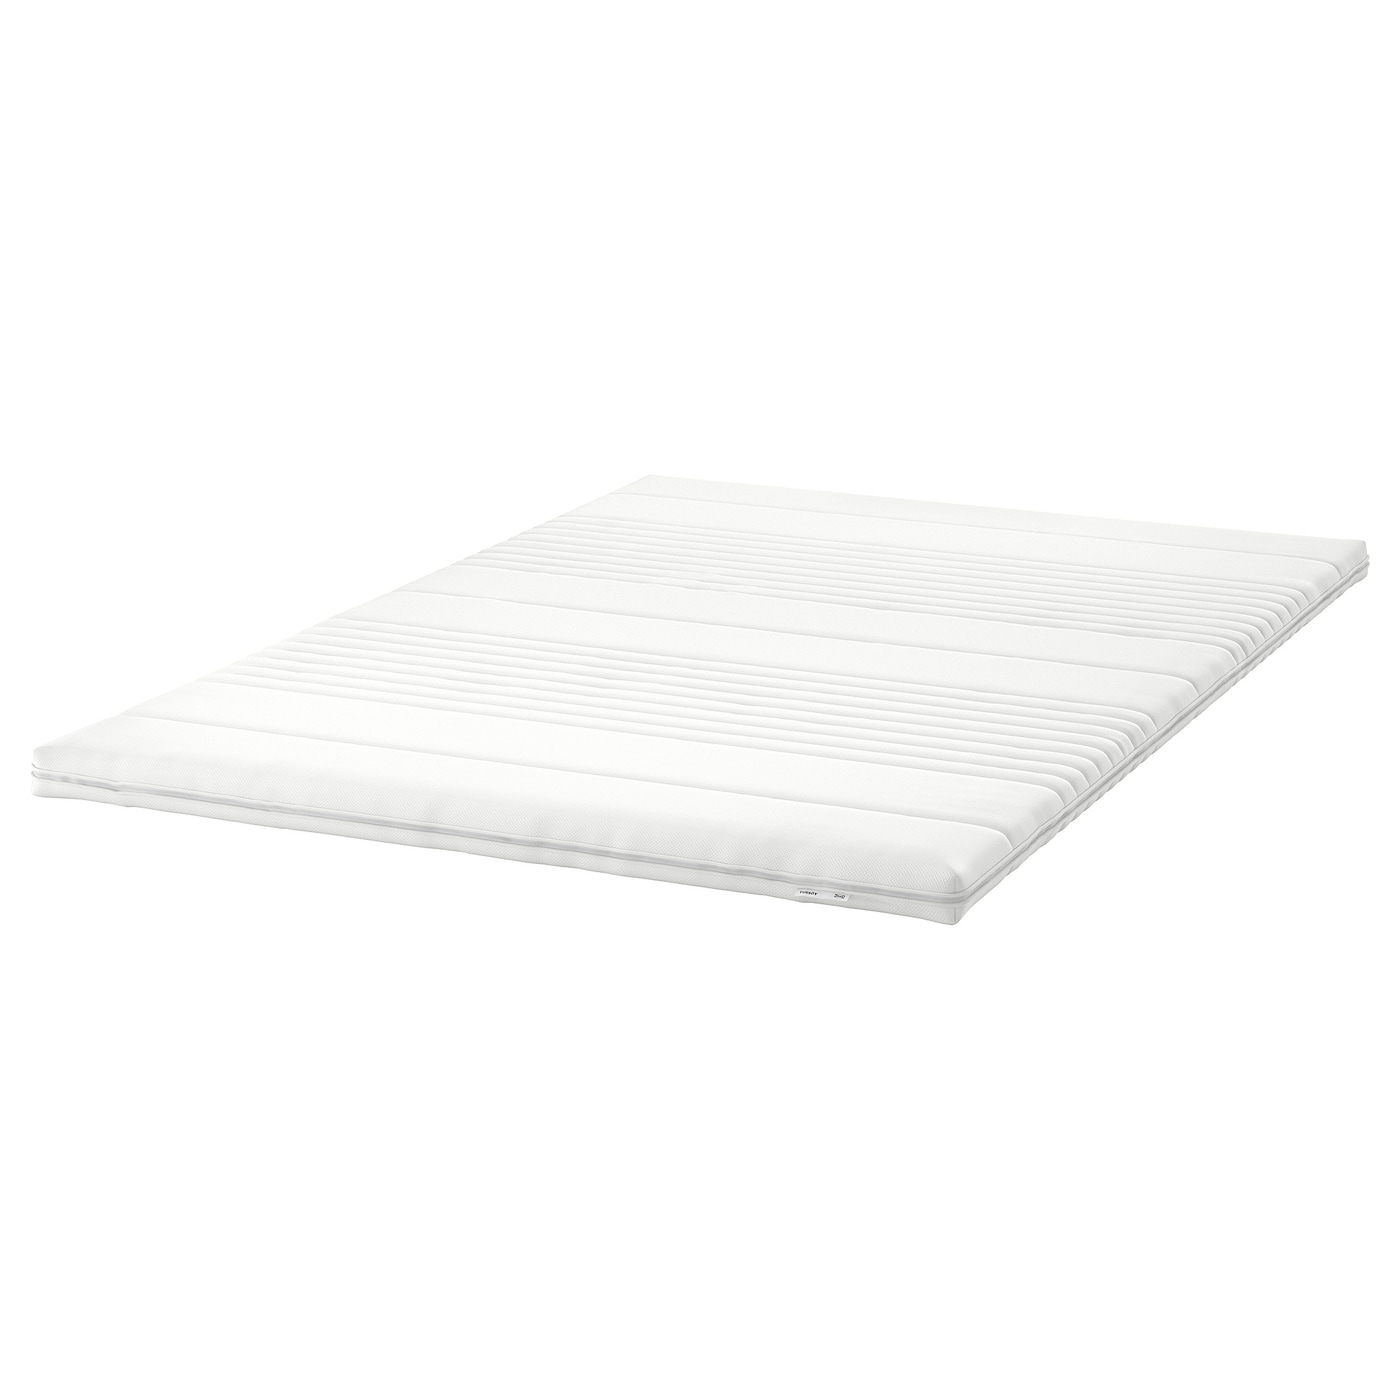 Ikea Rolled Mattress: TUSSÖY Mattress Topper White Standard Double